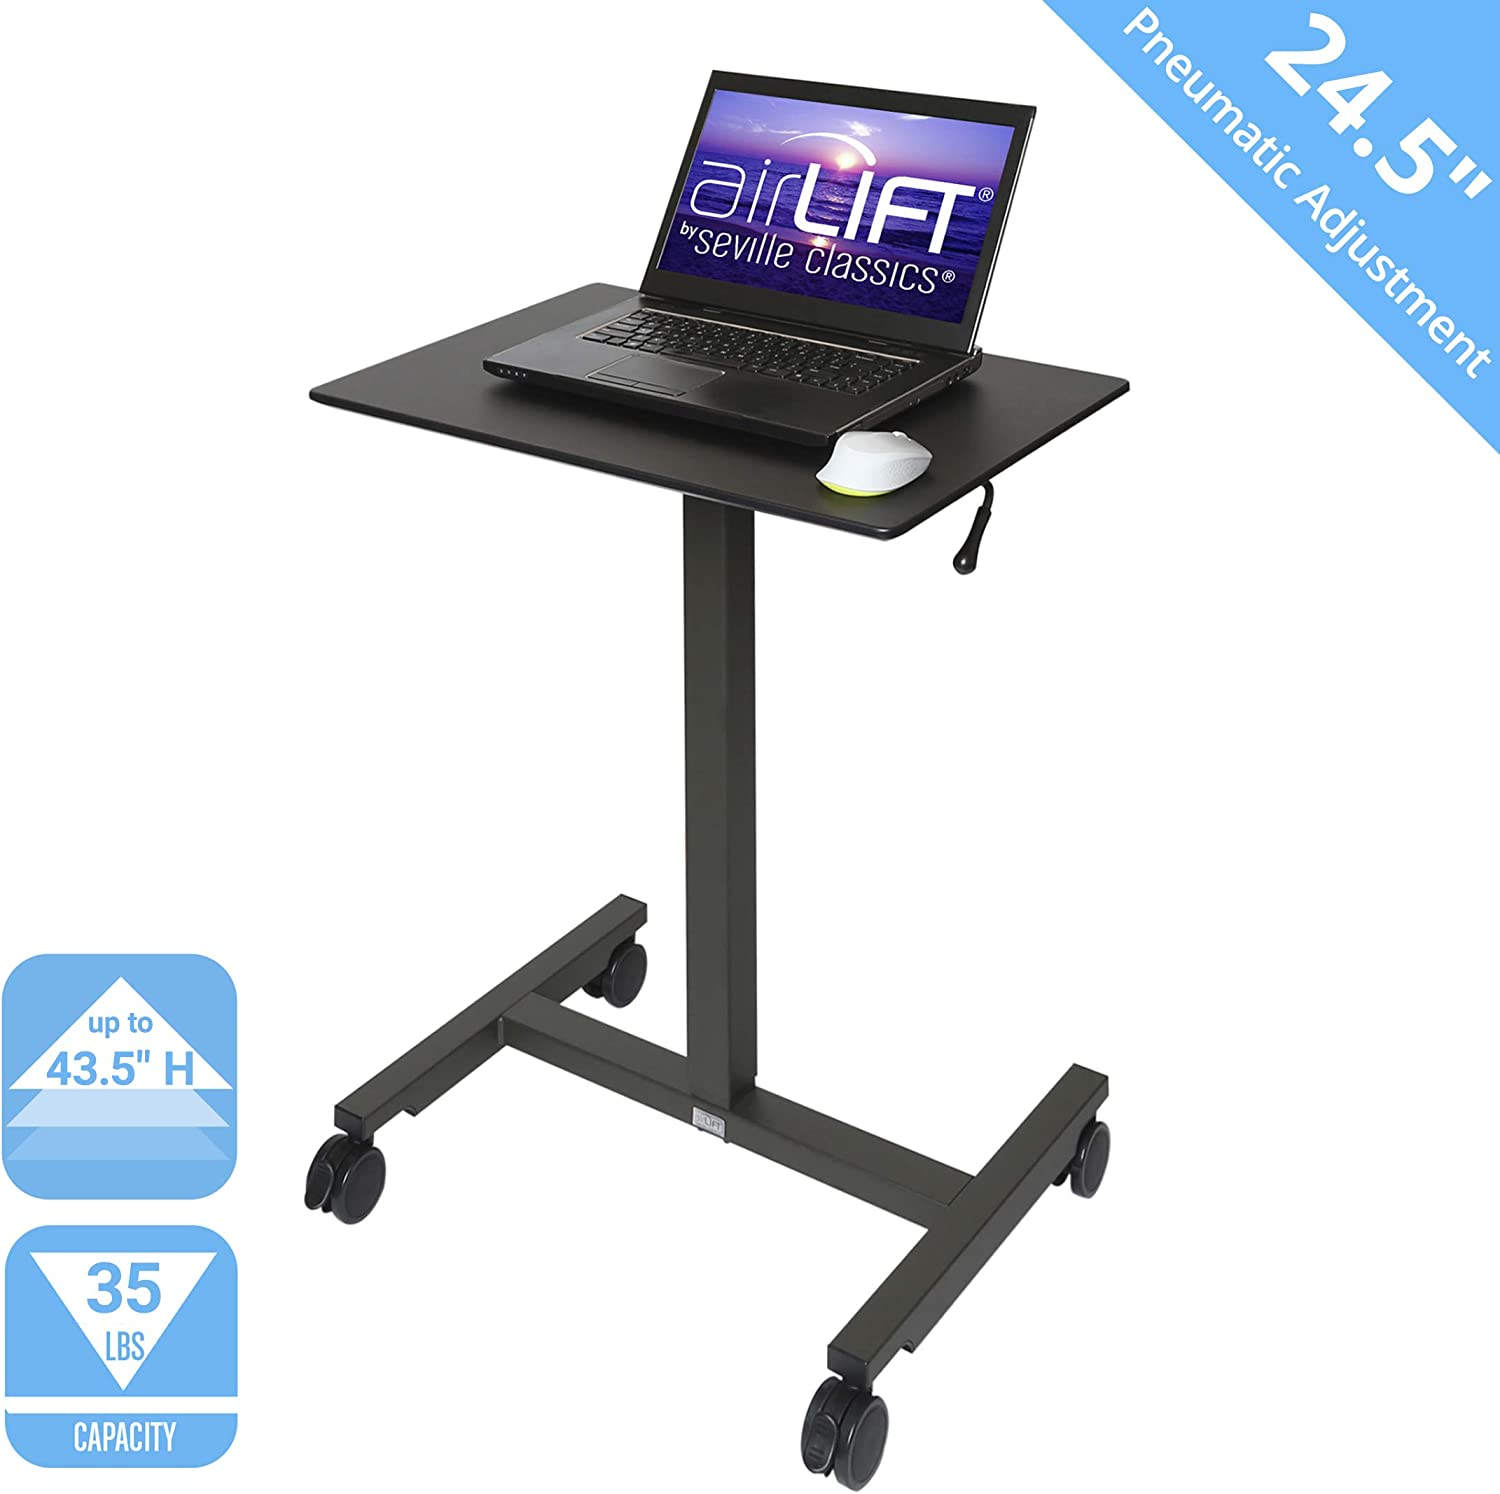 "Seville Classics OFF42631 Airlift 24.5"" Pneumatic Height Adjustable Sit-Stand Mobile Laptop Computer Desk Cart (29.3"" to. 43.5"" H), 24"", Black"